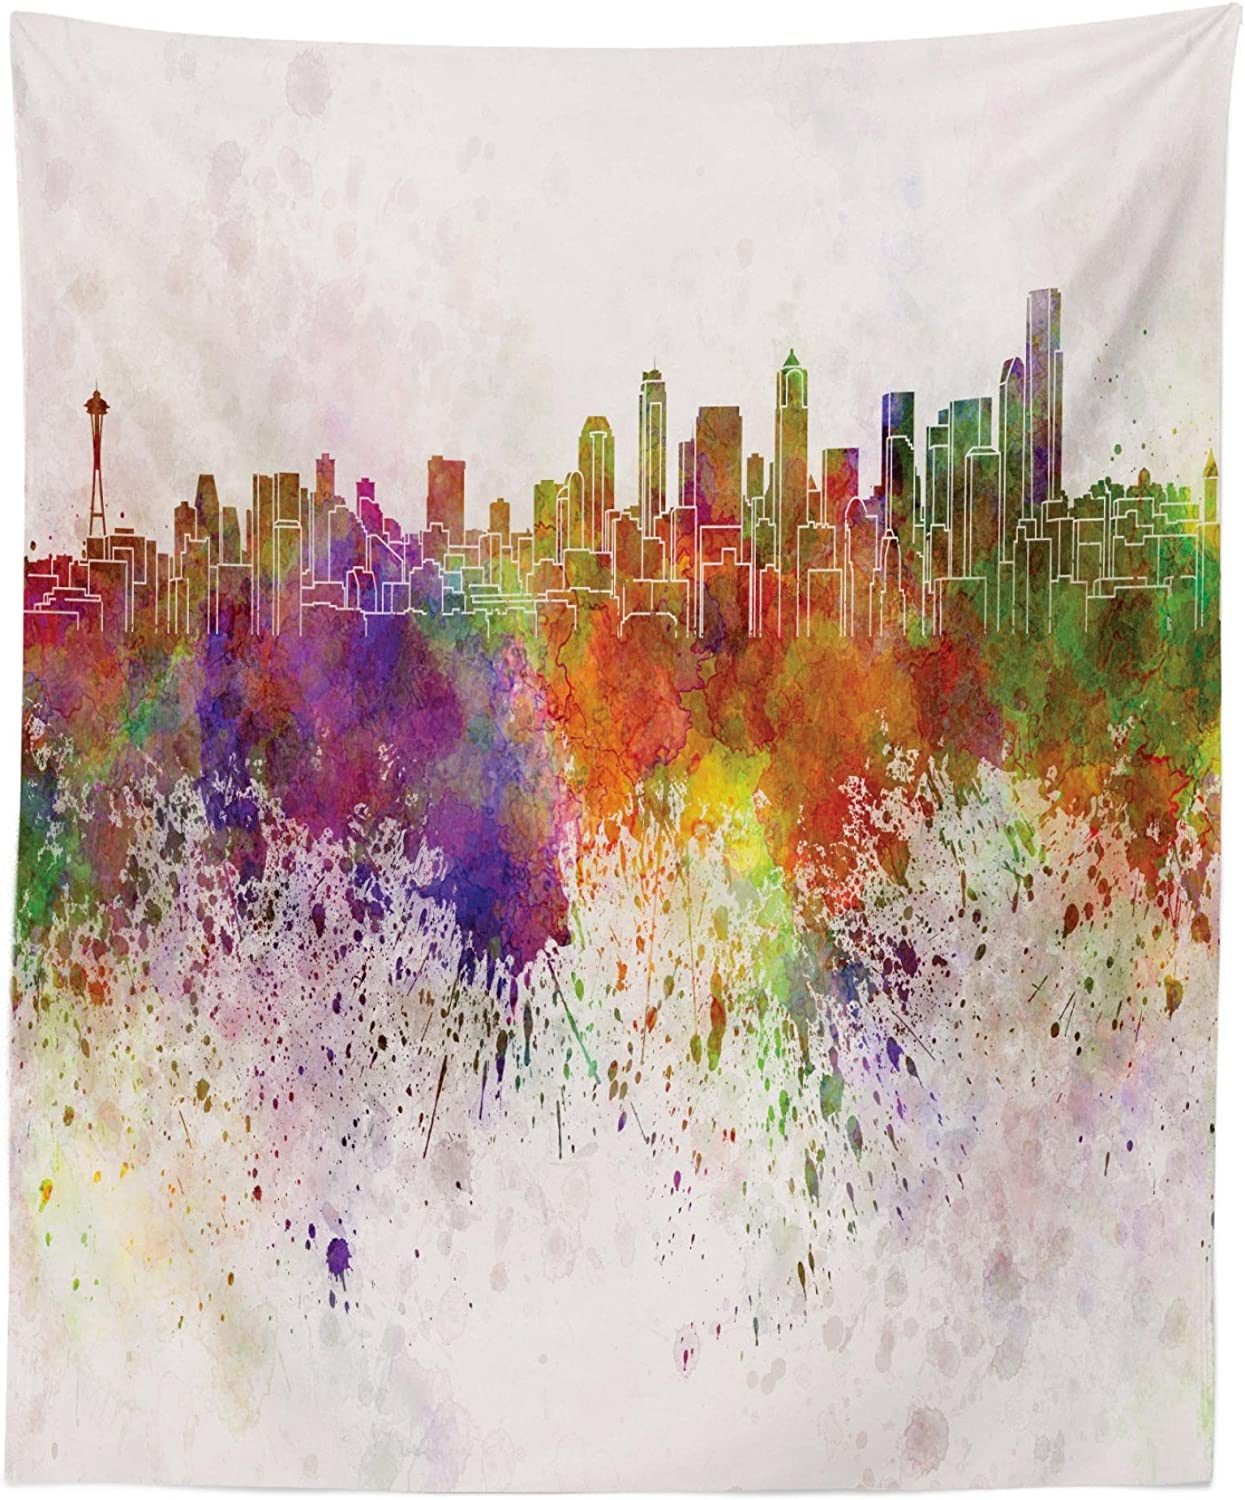 """Lunarable Seattle Tapestry, Washington King County Silhouette with Paint Splashes Colorful Urban Arrangement, Fabric Wall Hanging Decor for Bedroom Living Room Dorm, 23"""" X 28"""", Multicolor"""